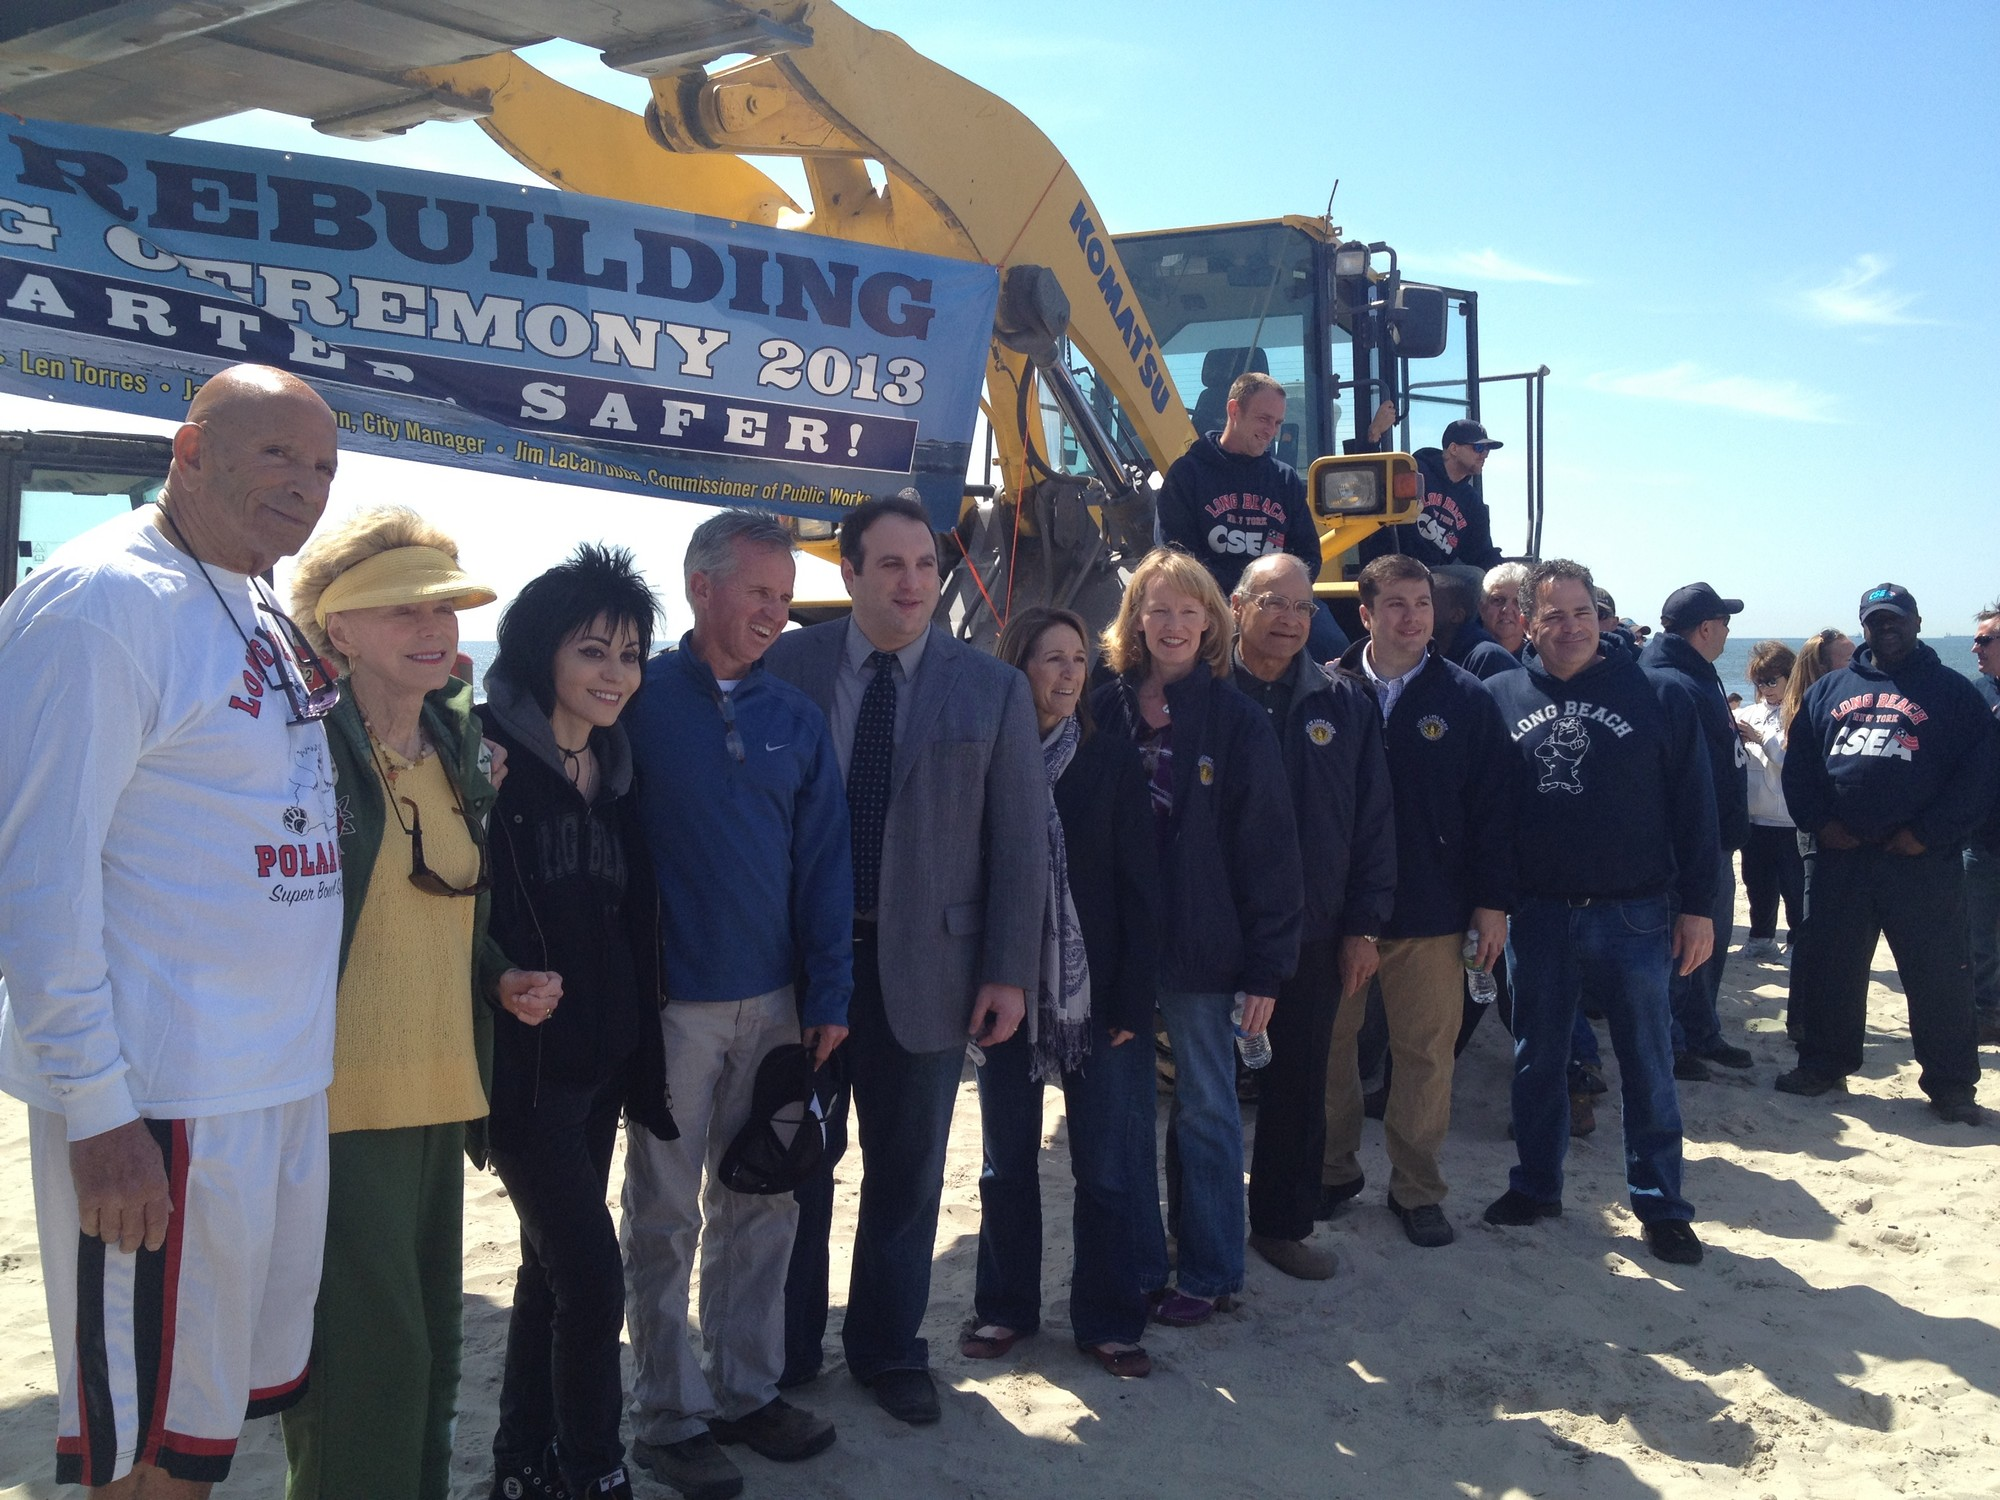 Officials at the boardwalk ceremony.